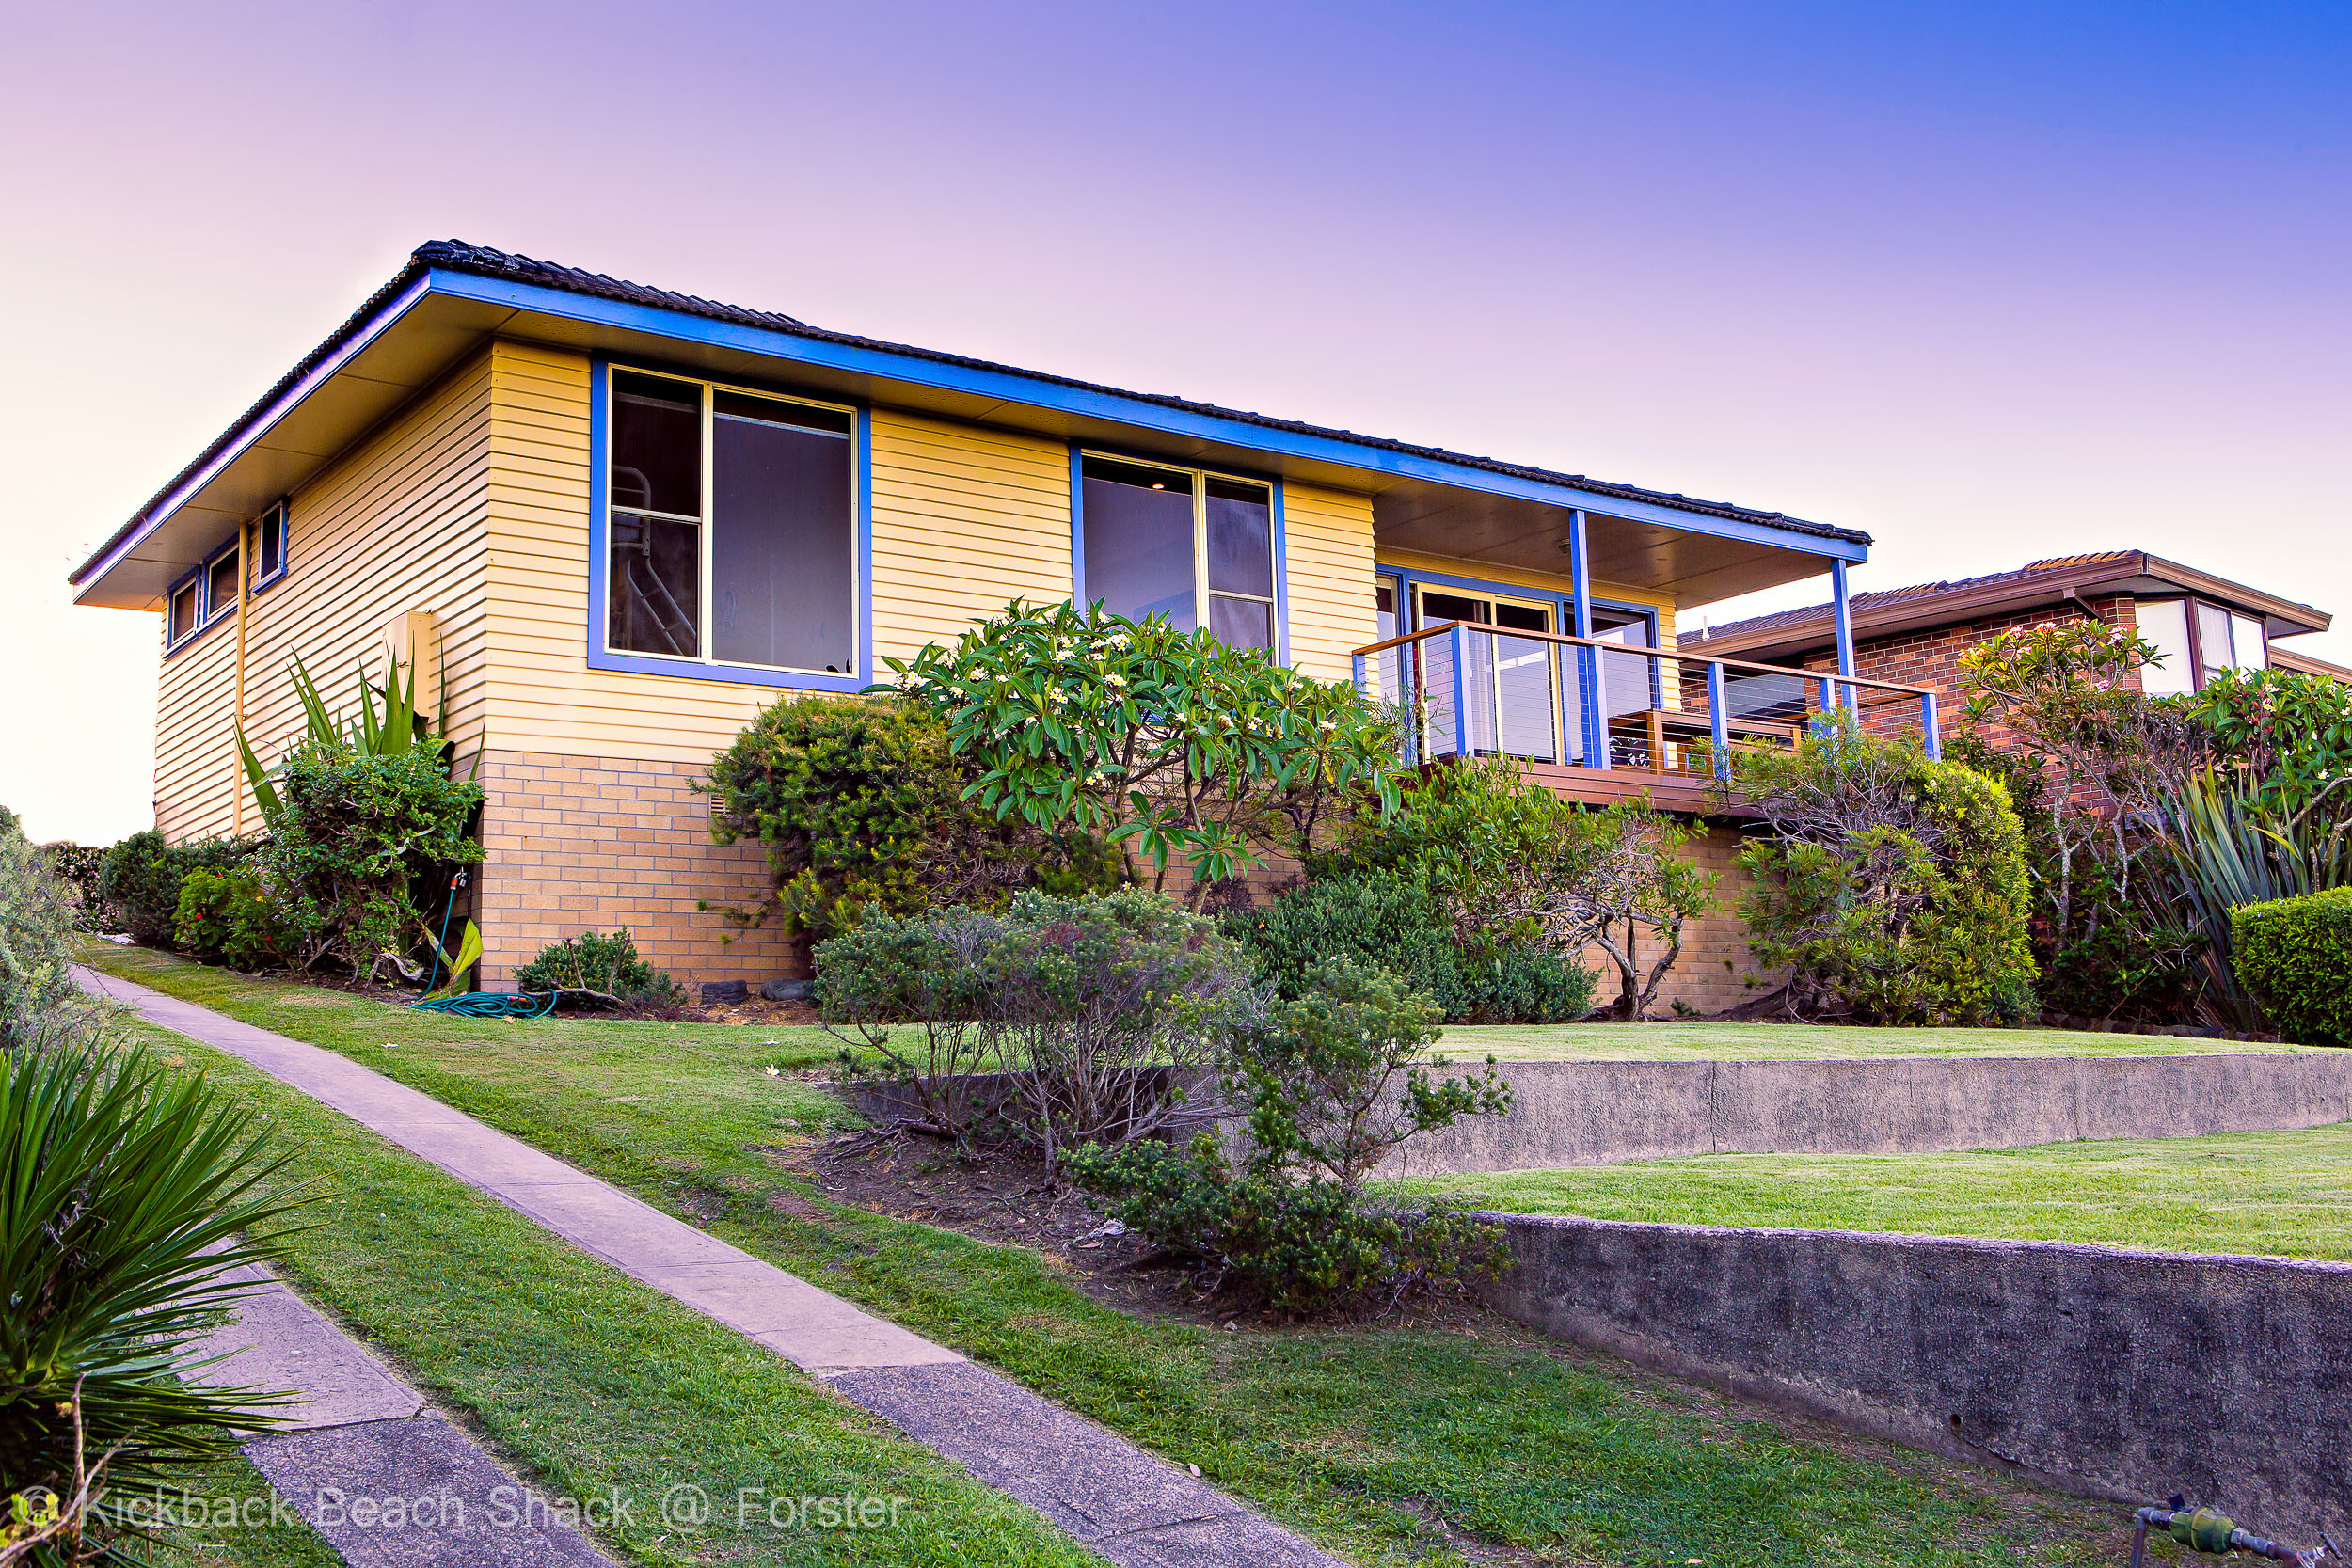 Forster-Accommodation-and-Pet-Friendly-Holiday-House-NSW-yours-for-the-holiday